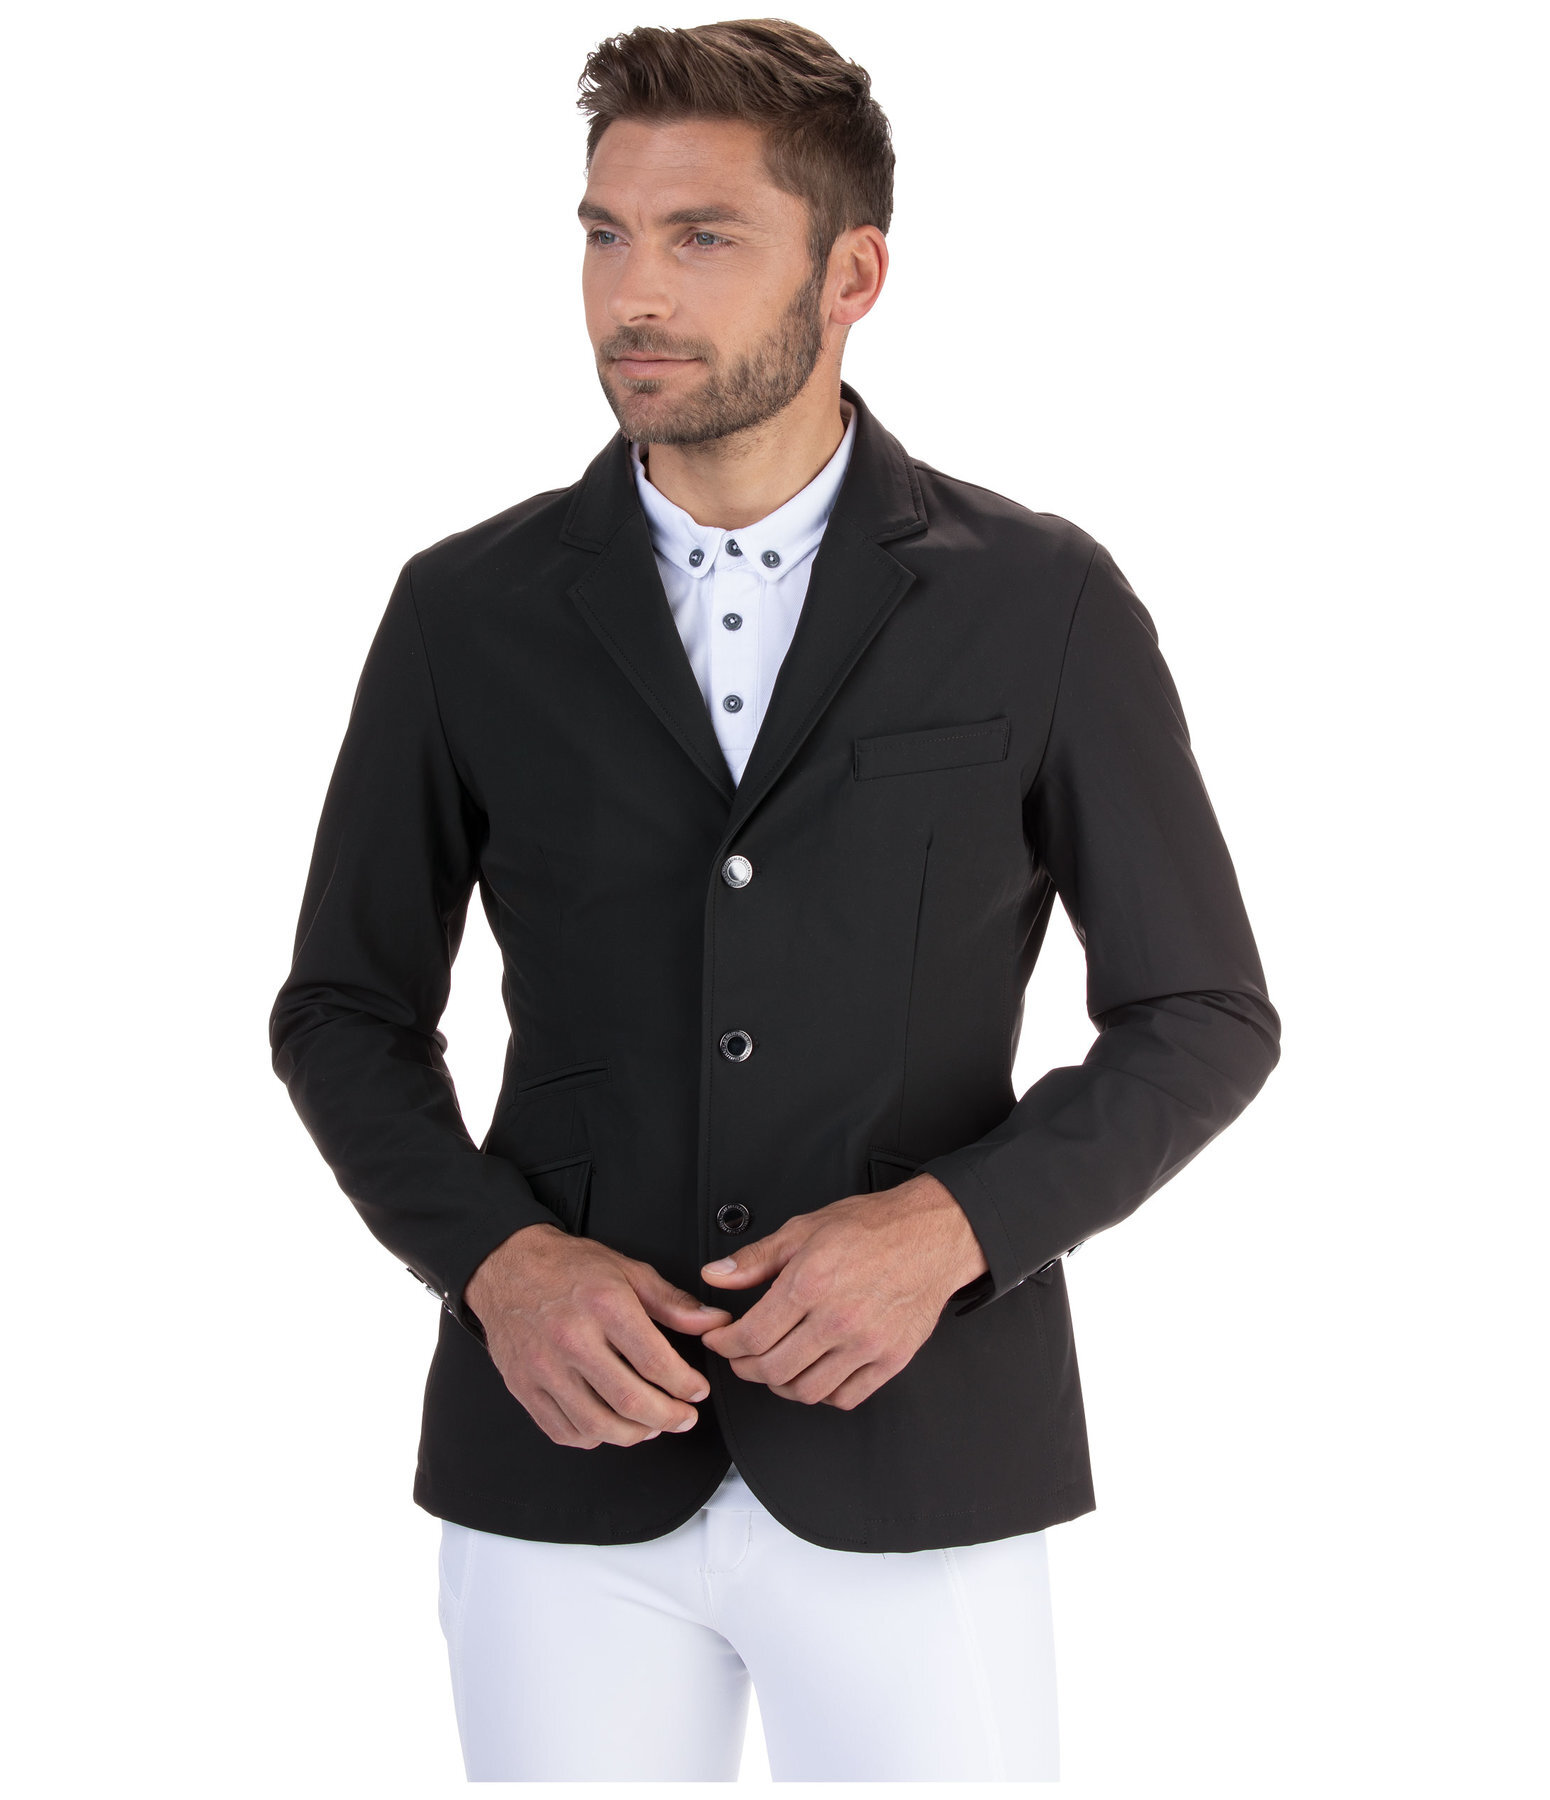 Herren-Turnierjacket Connor